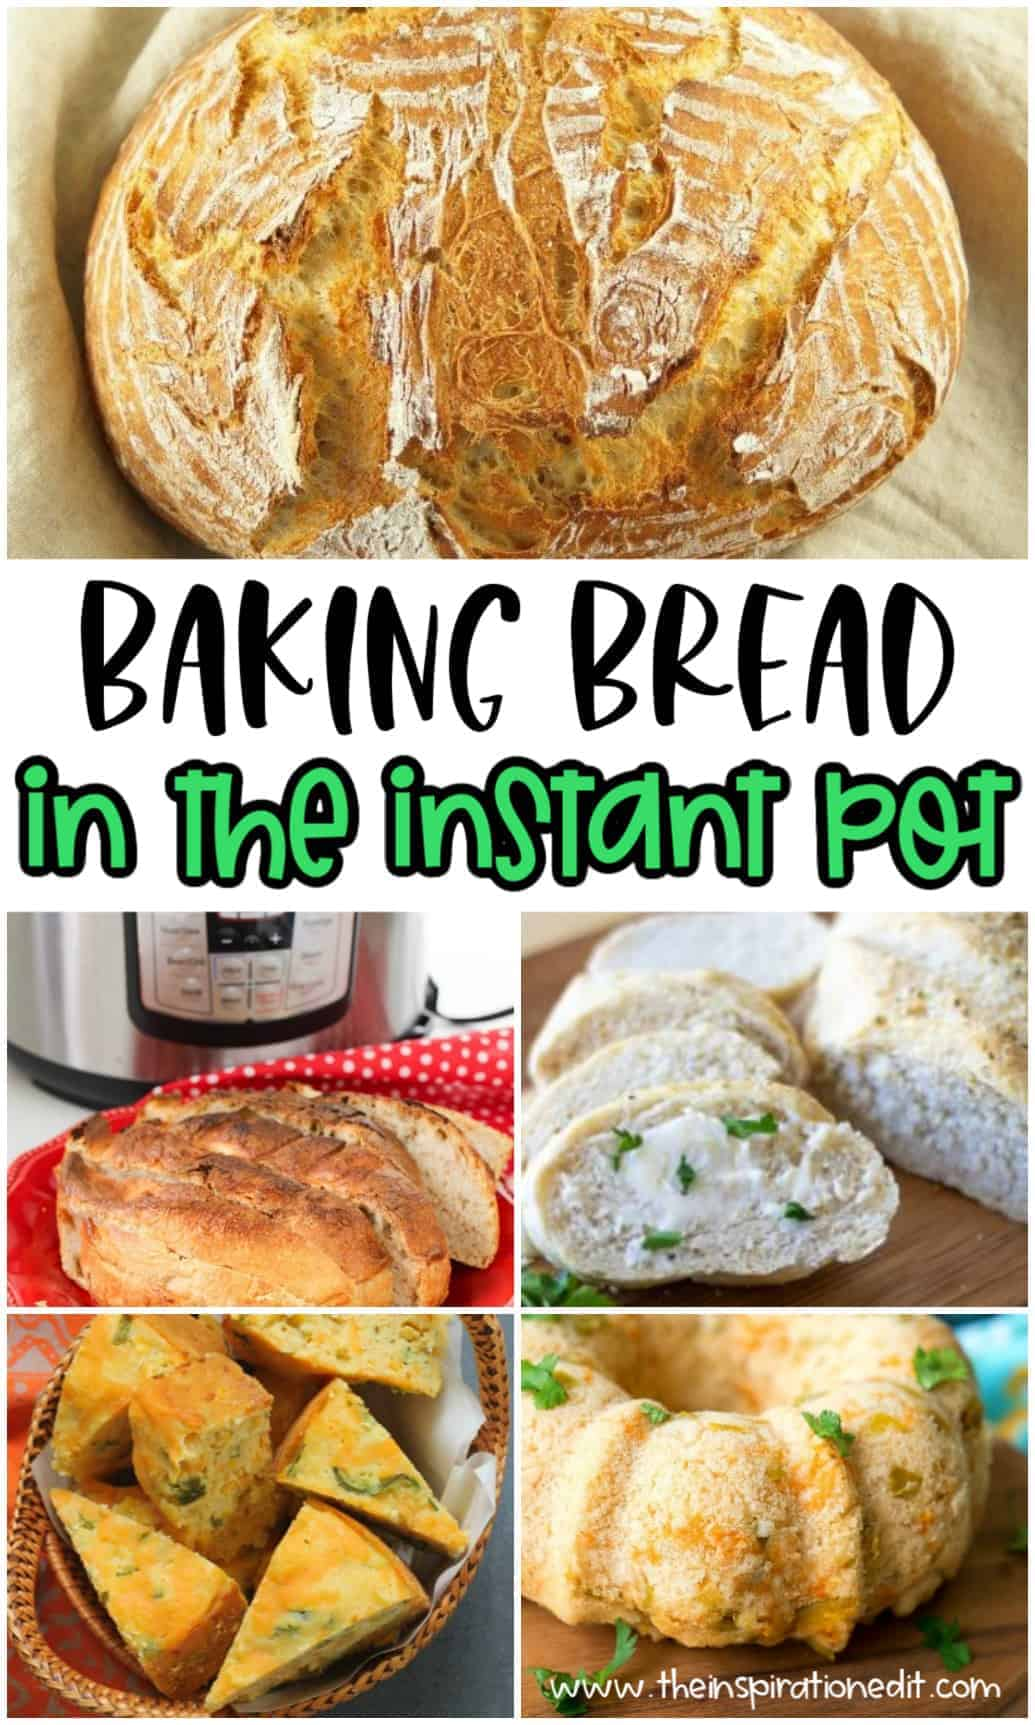 hot to make bread in the instant pot